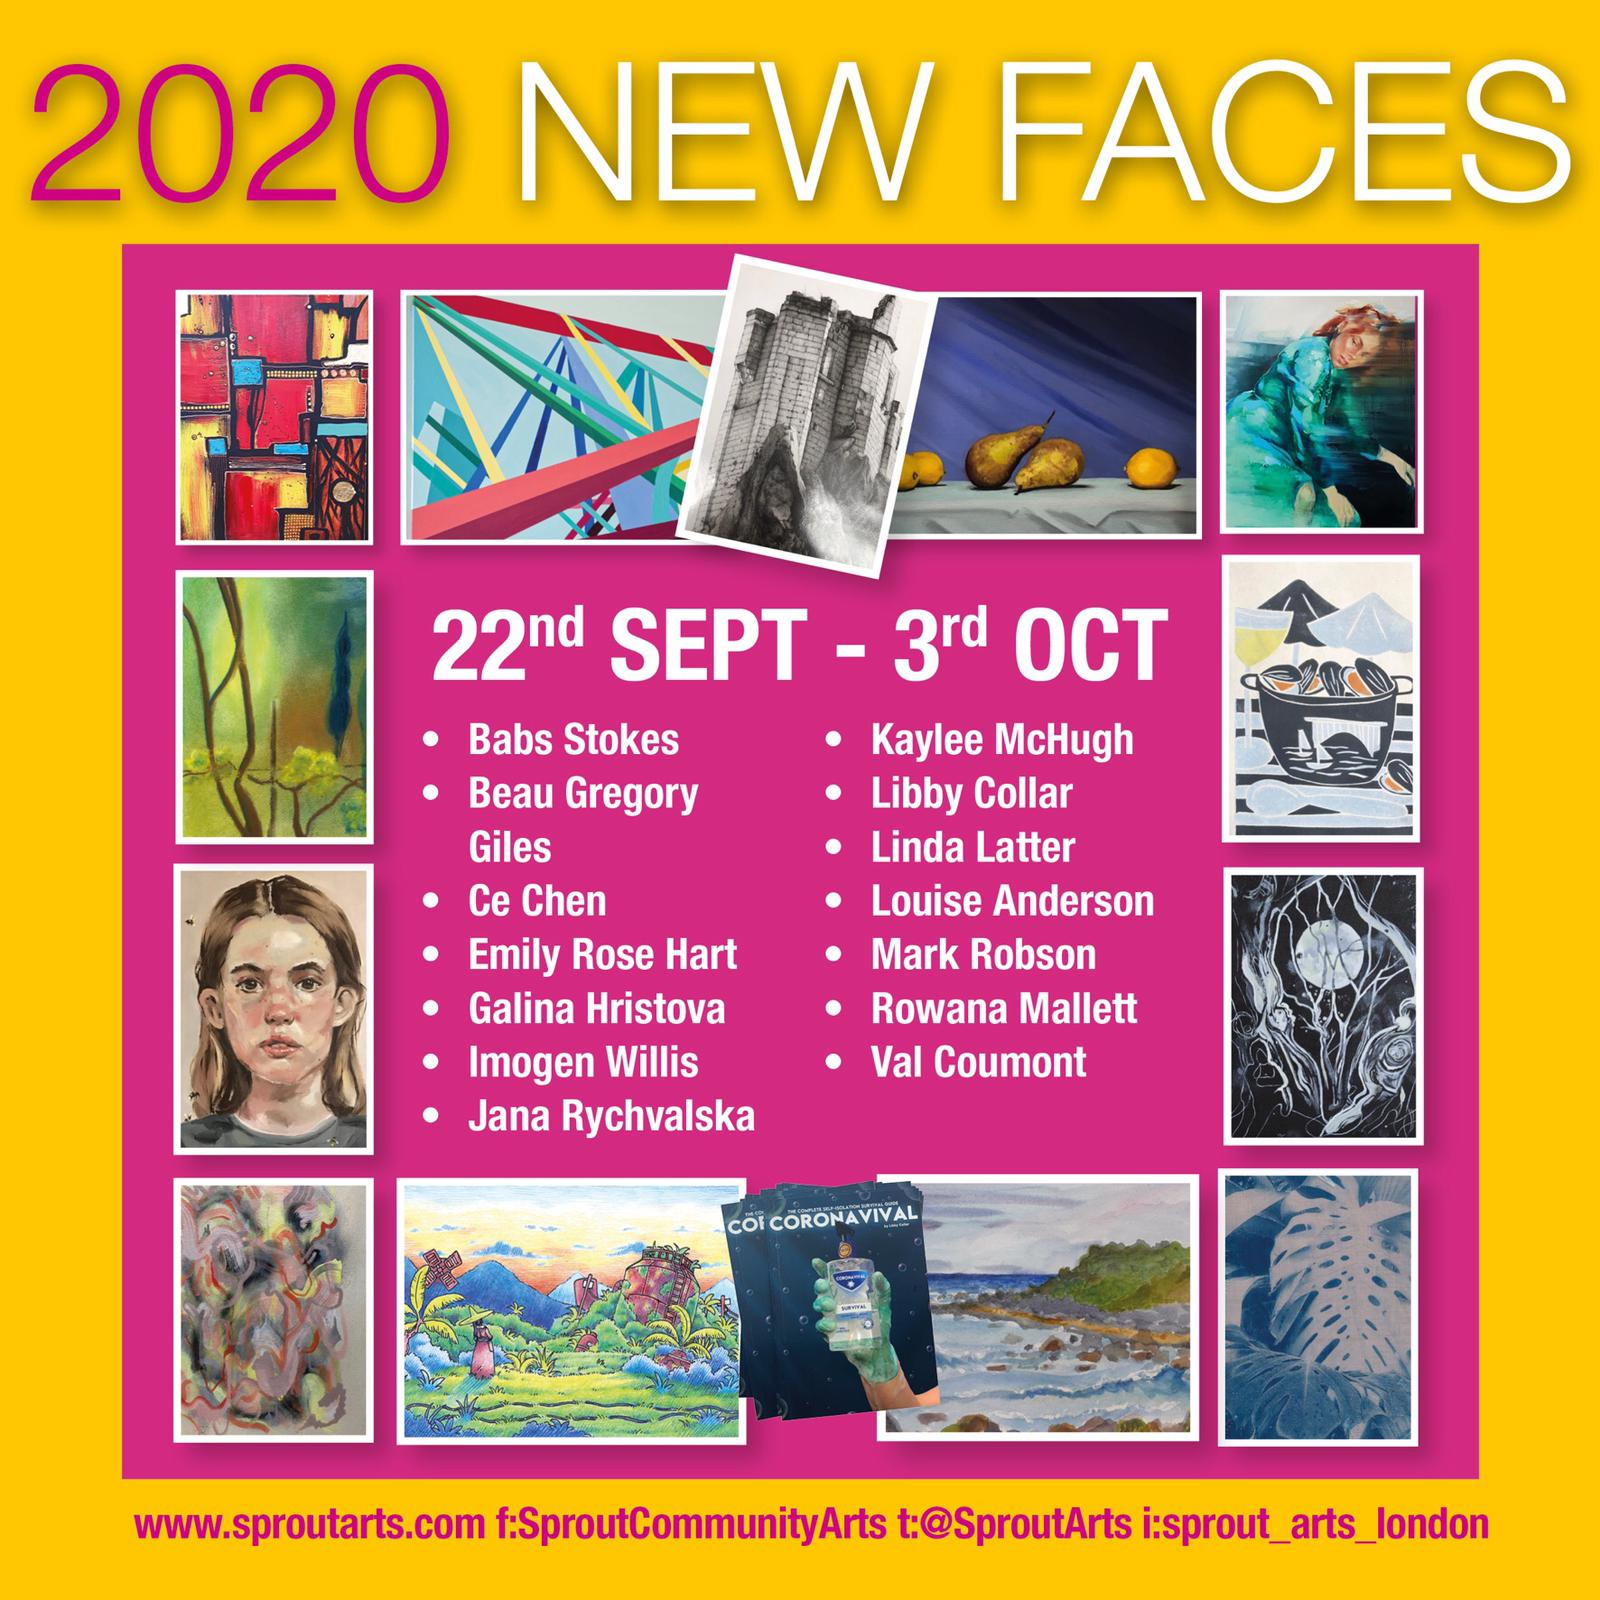 New Faces 2020 sq